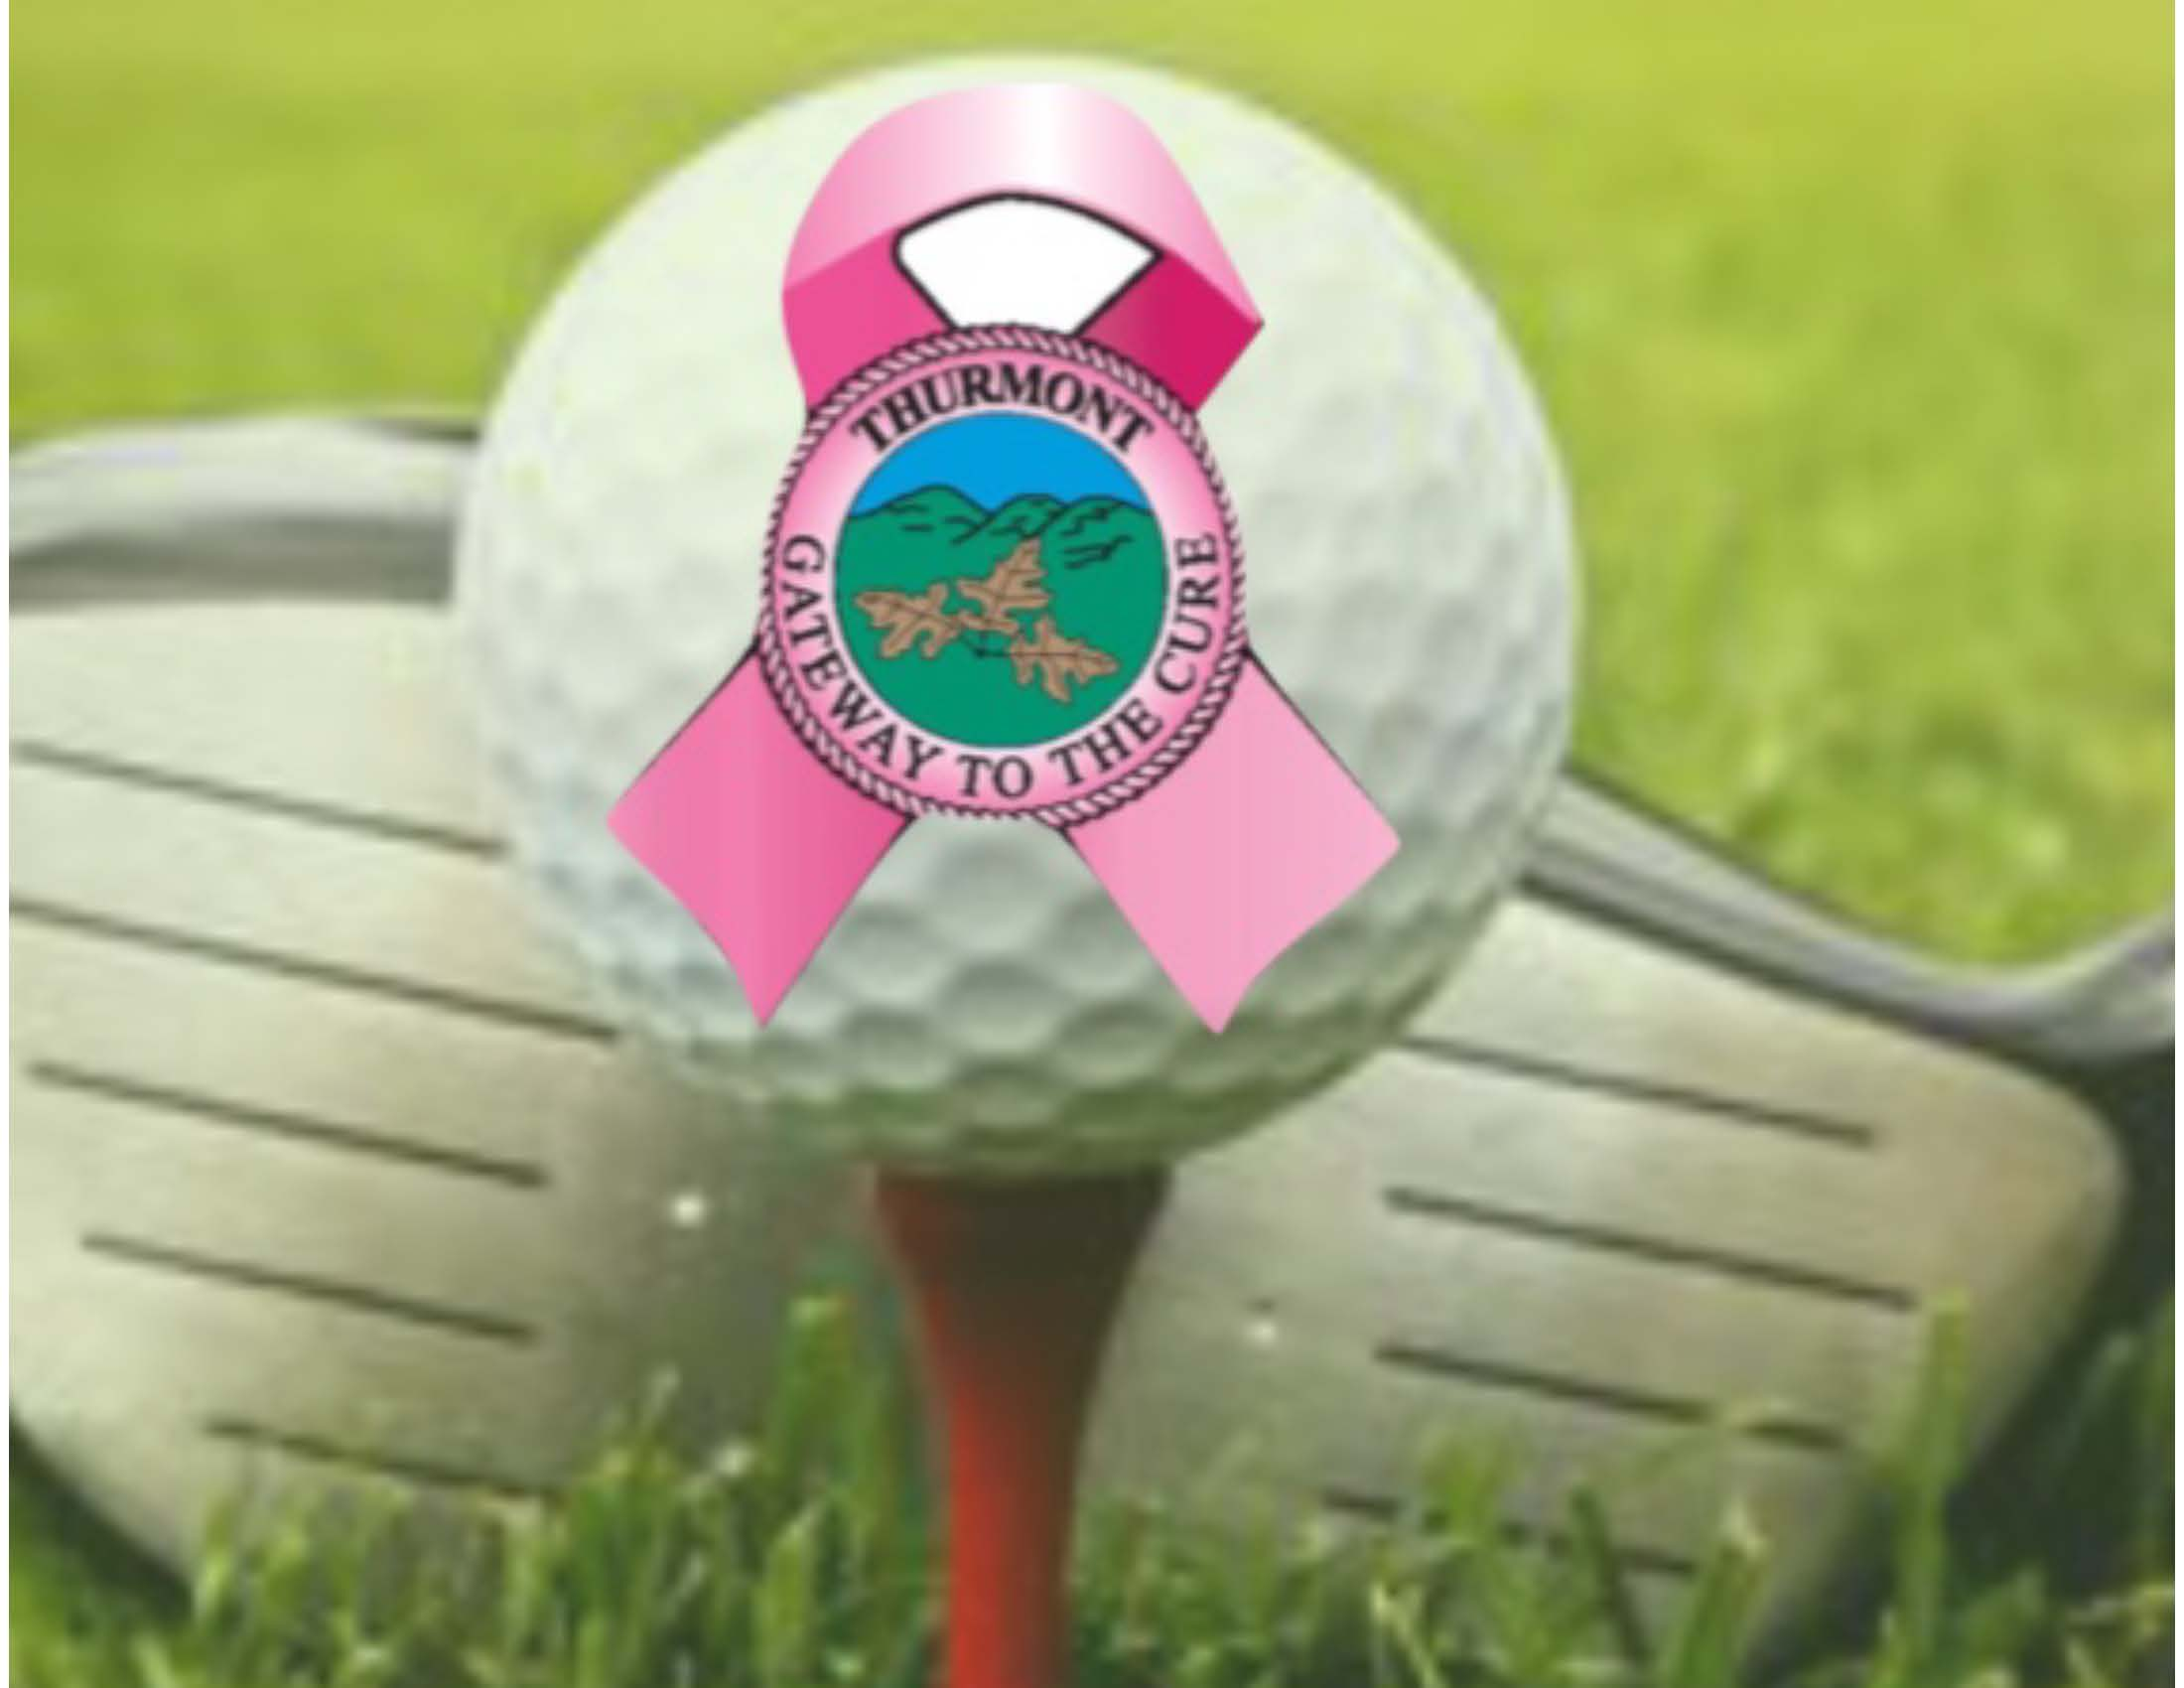 Gateway To The Cure Golf Classic logo